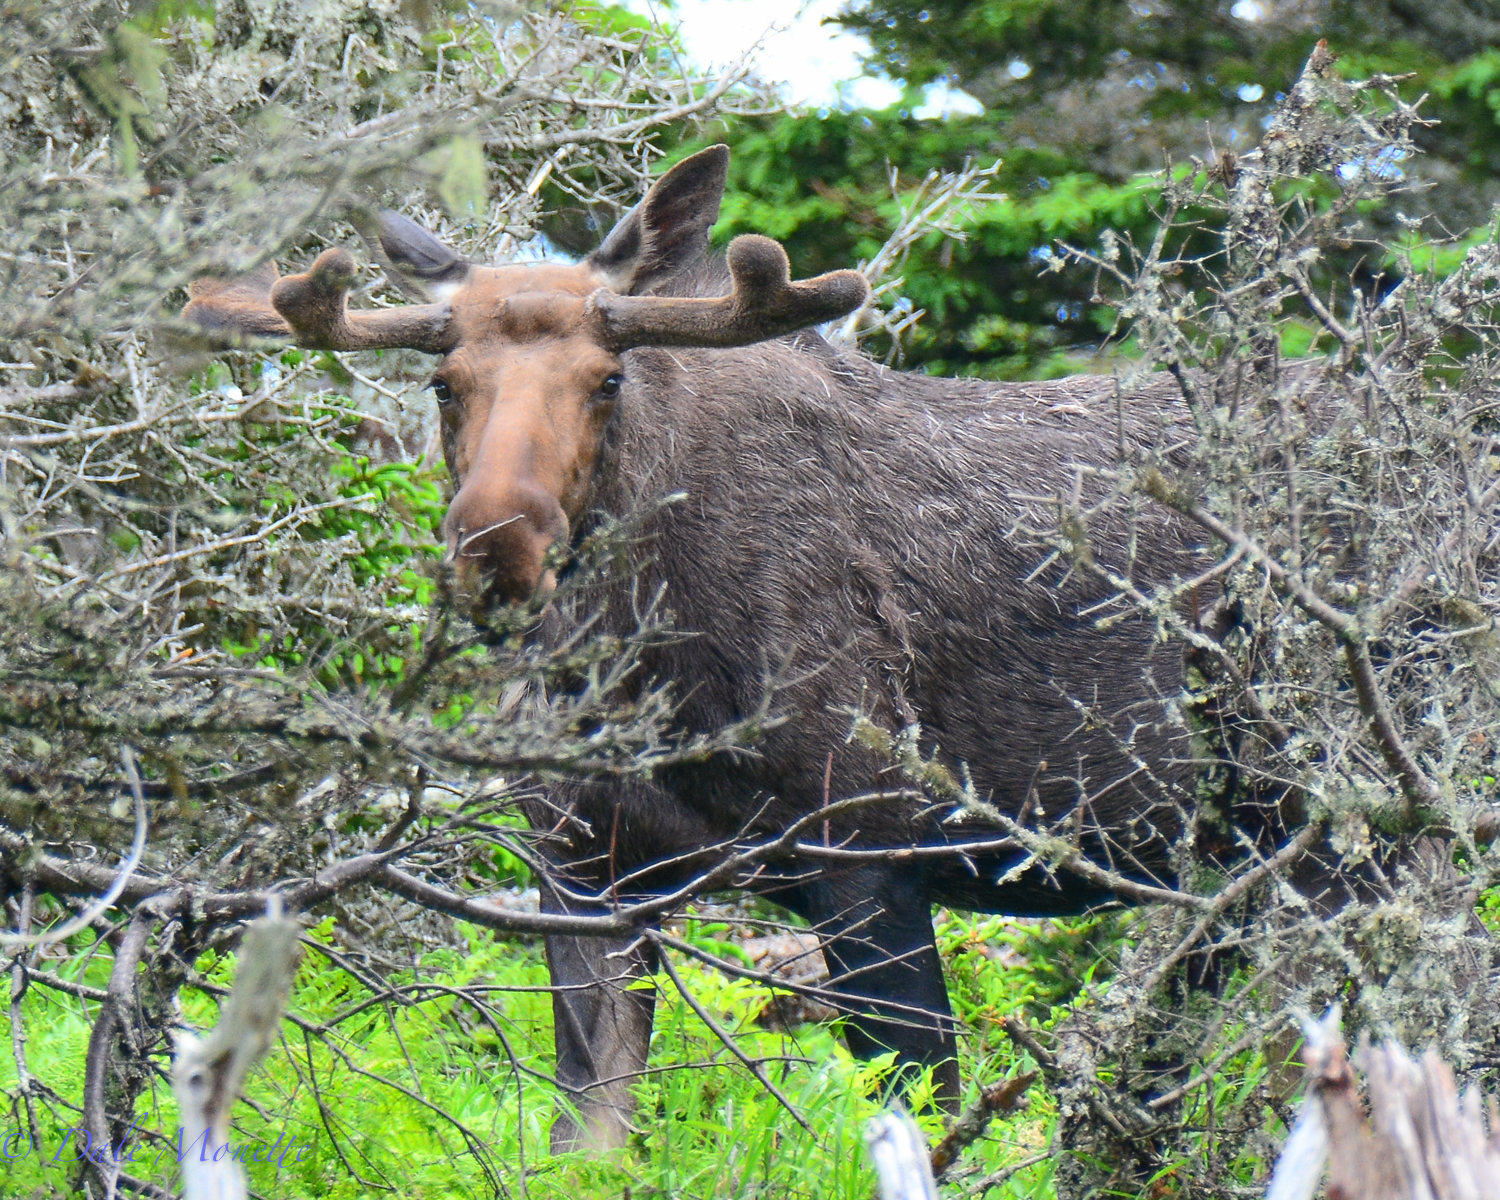 Another bull watching me cautiously.  Thanks for telephoto lenses !!